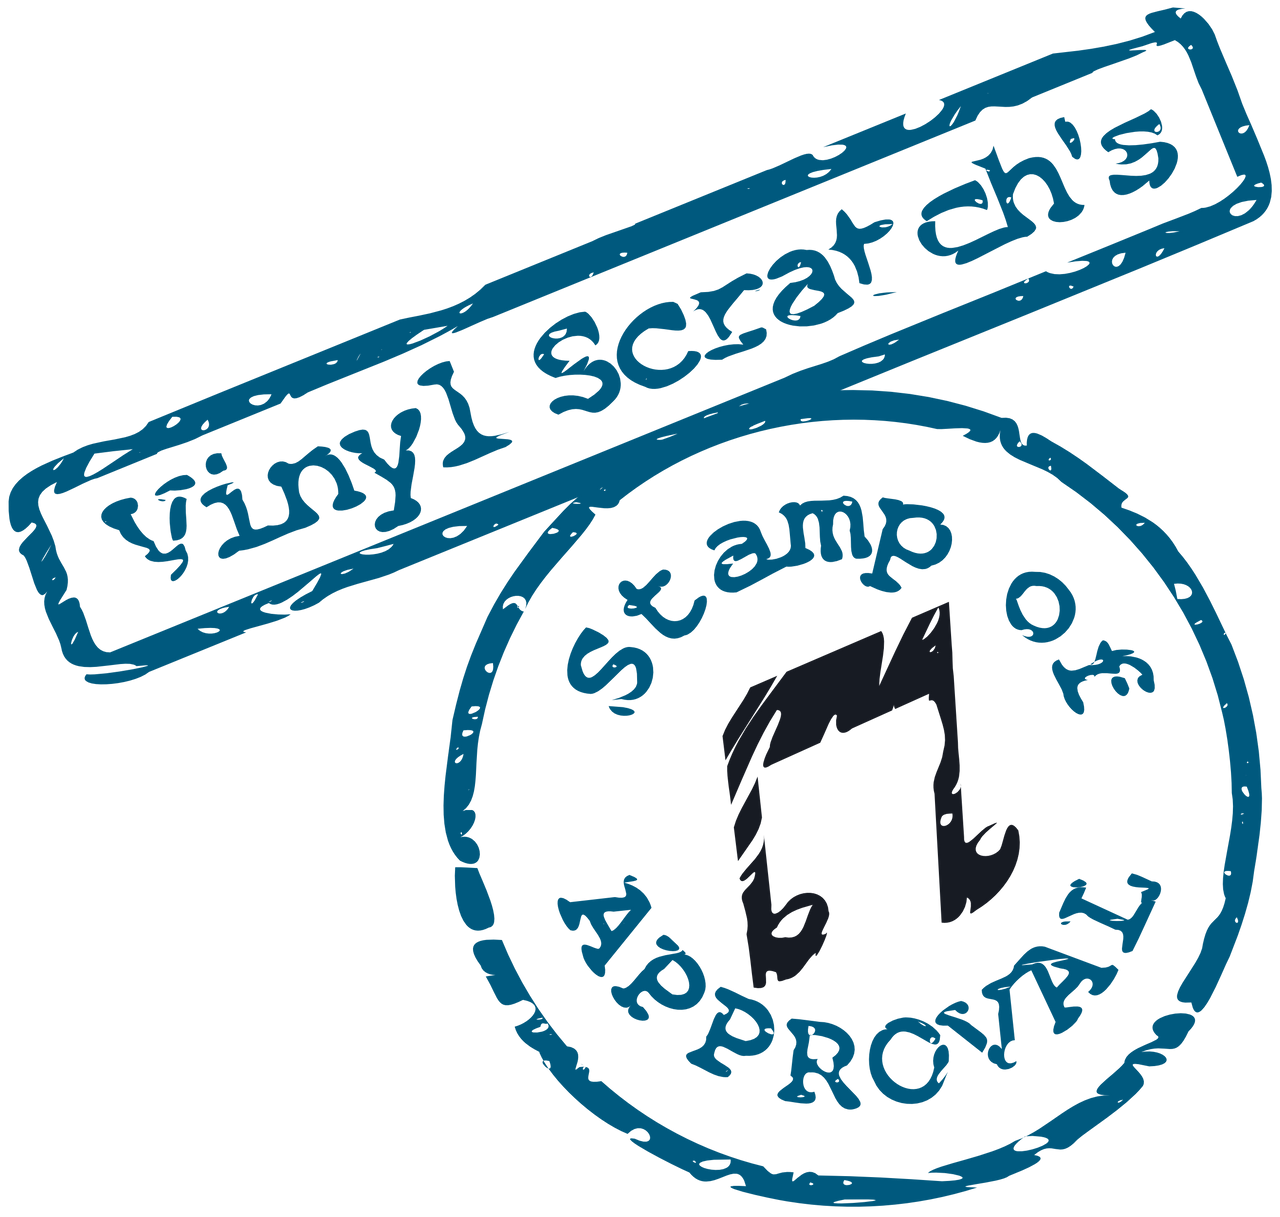 vinyl_scratch_s_stamp_of_approval_by_tiw